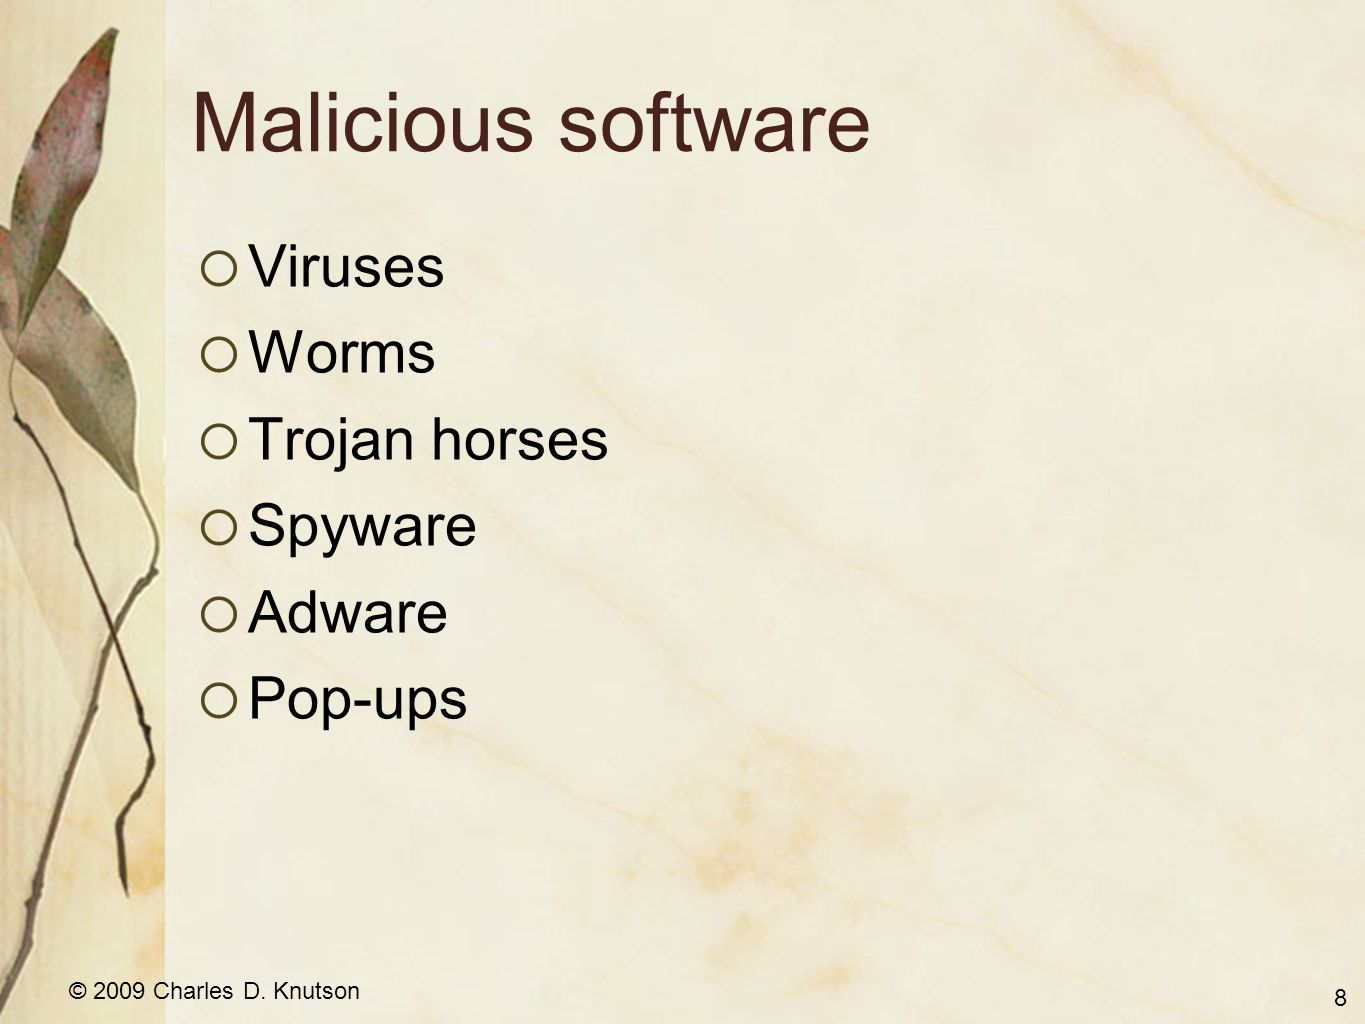 © 2009 Charles D. Knutson Malicious software Viruses Worms Trojan horses Spyware Adware Pop-ups 8